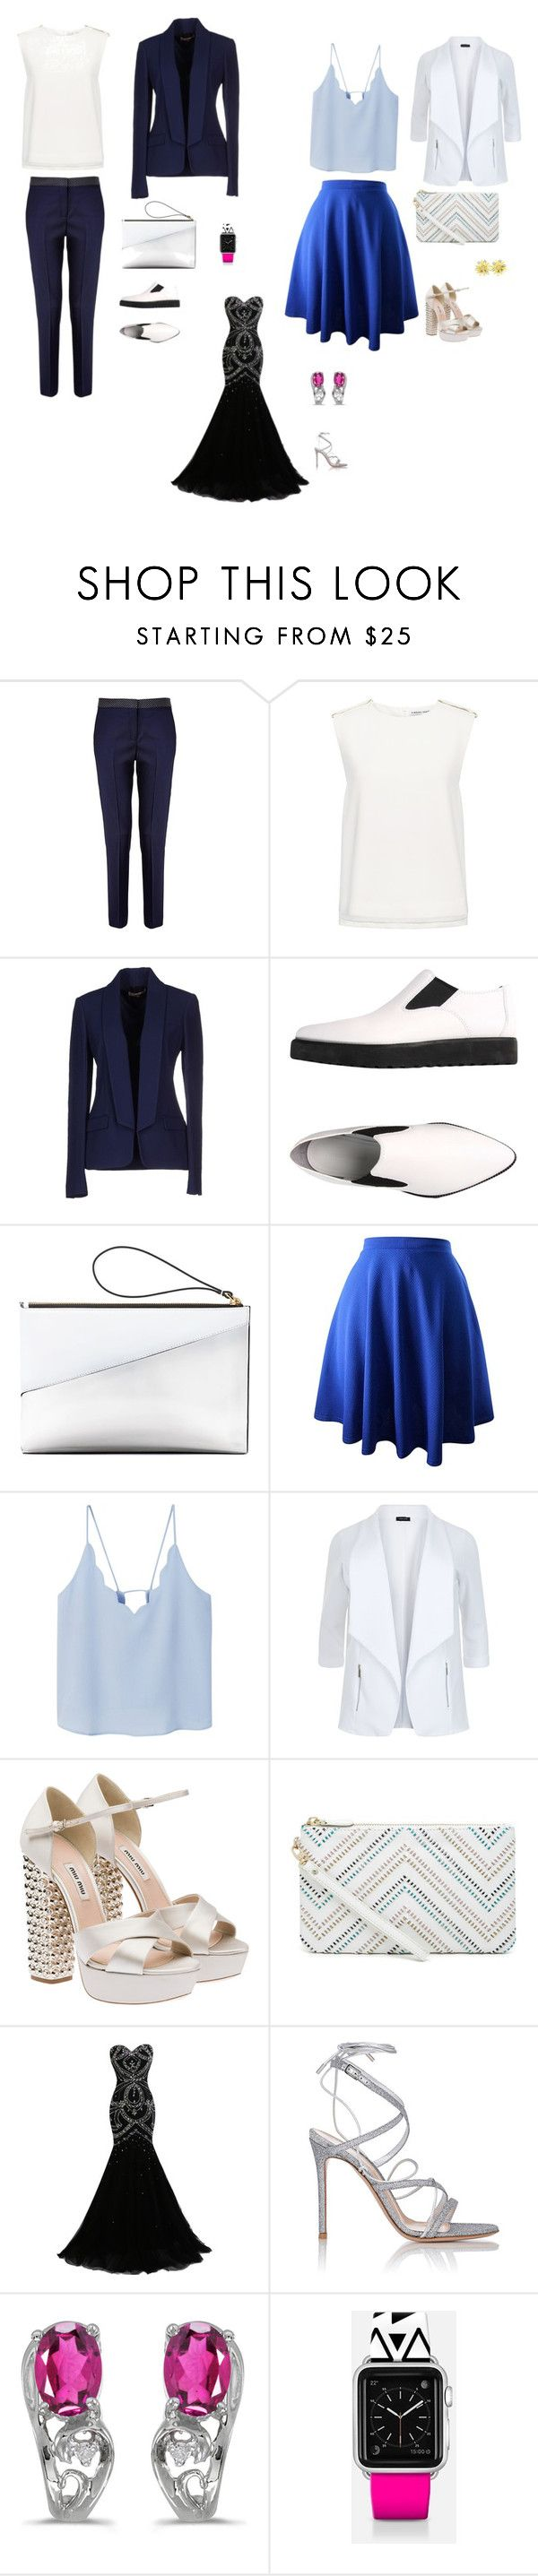 """Наброски"" by madlily86 on Polyvore featuring мода, Paul Smith Black Label, Finders Keepers, Michael Kors, Alexander Wang, Marni, MANGO, New Look, Miu Miu и Gianvito Rossi"